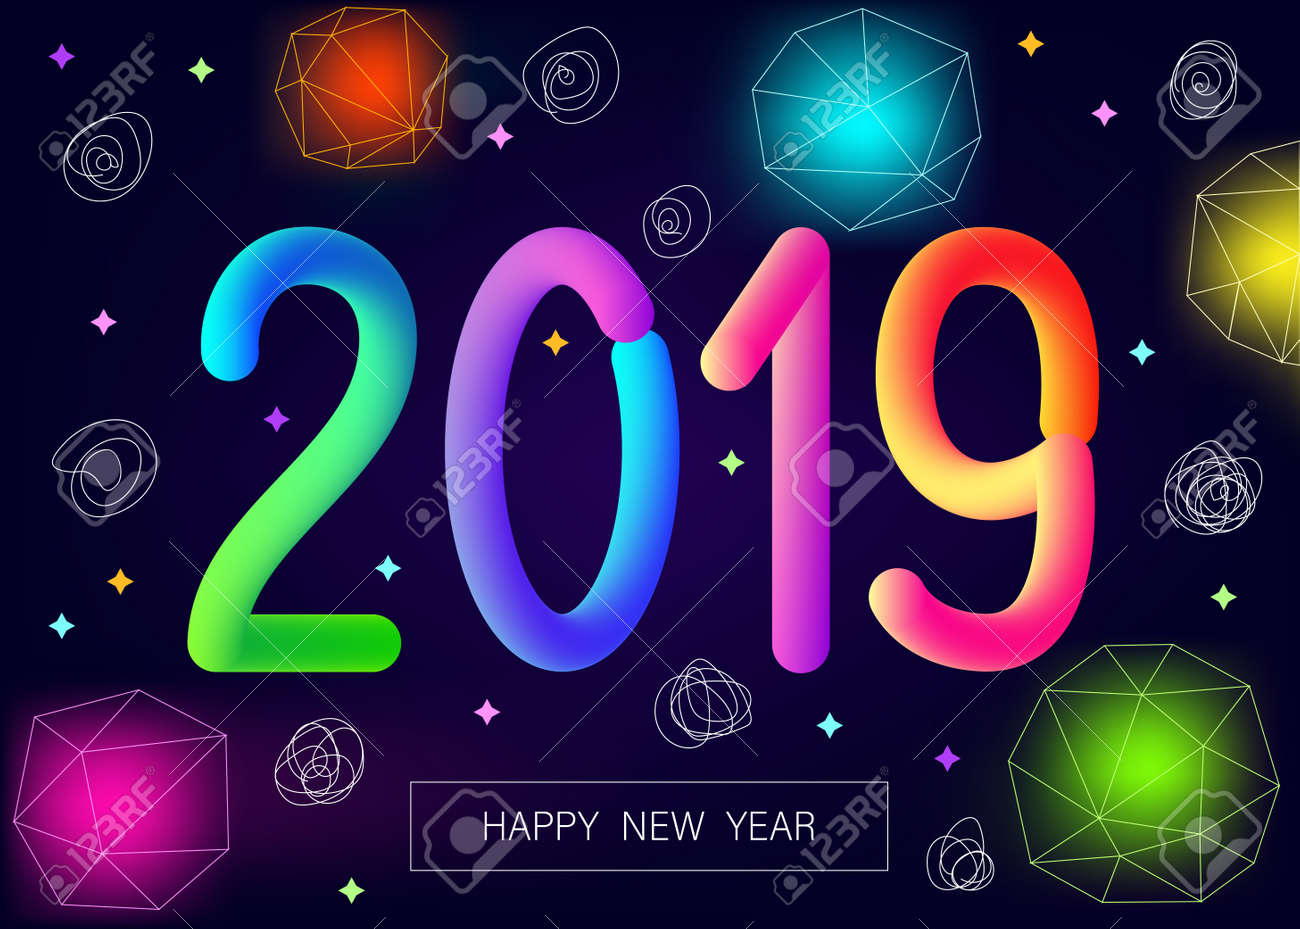 2019 new year greeting card on dark purple background with colorful neon flash and number